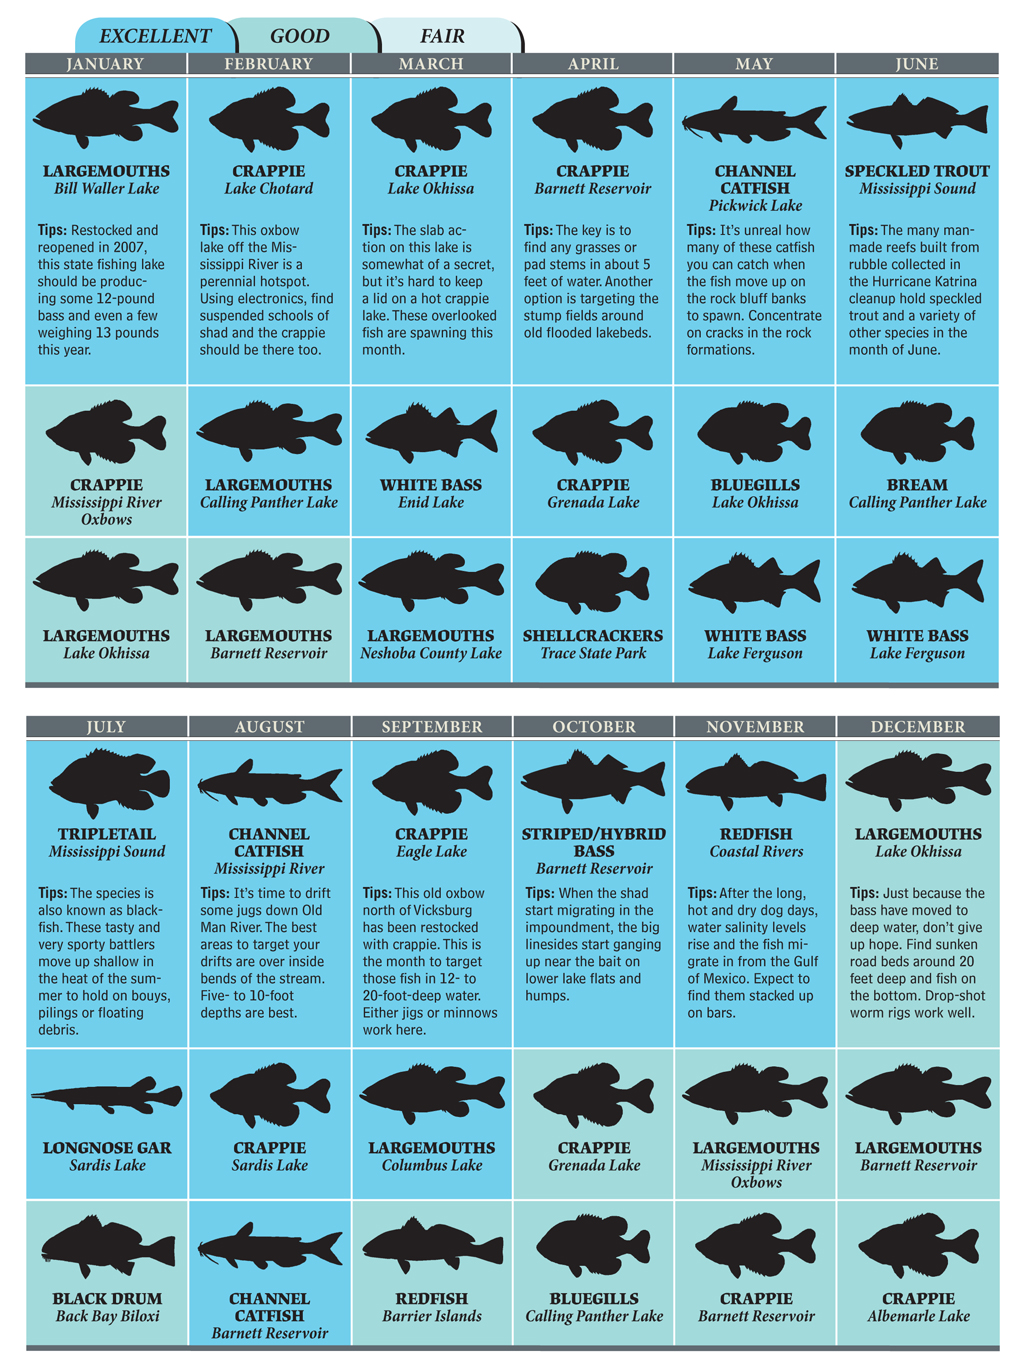 Top Spots for Mississippi Fishing in 2012